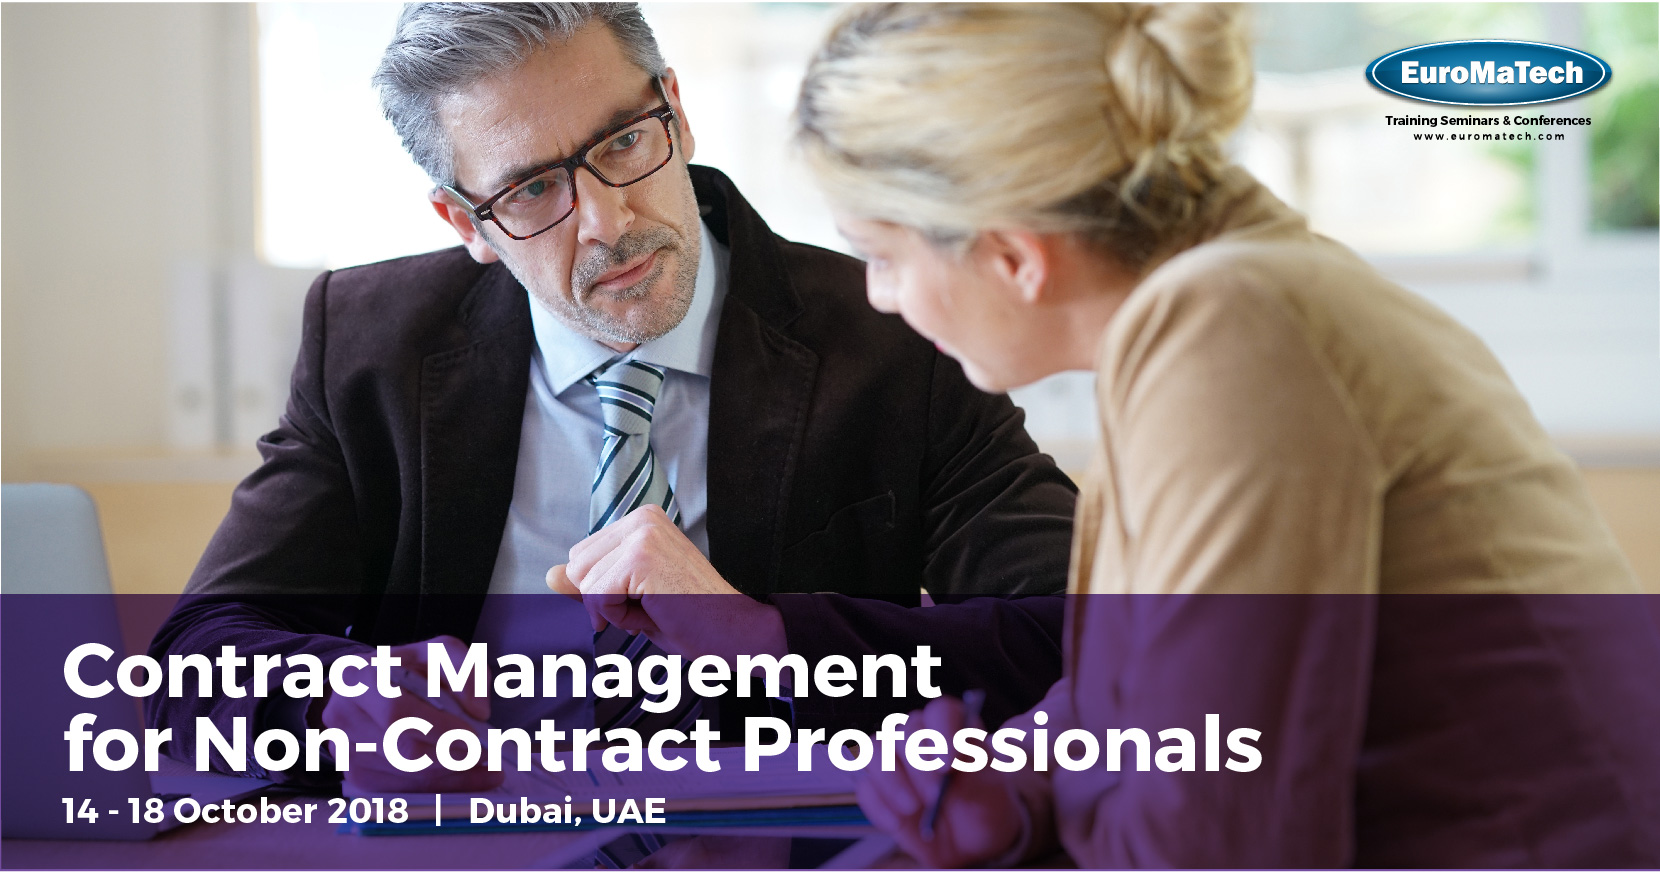 Contract Management for Non-Contract Professionals